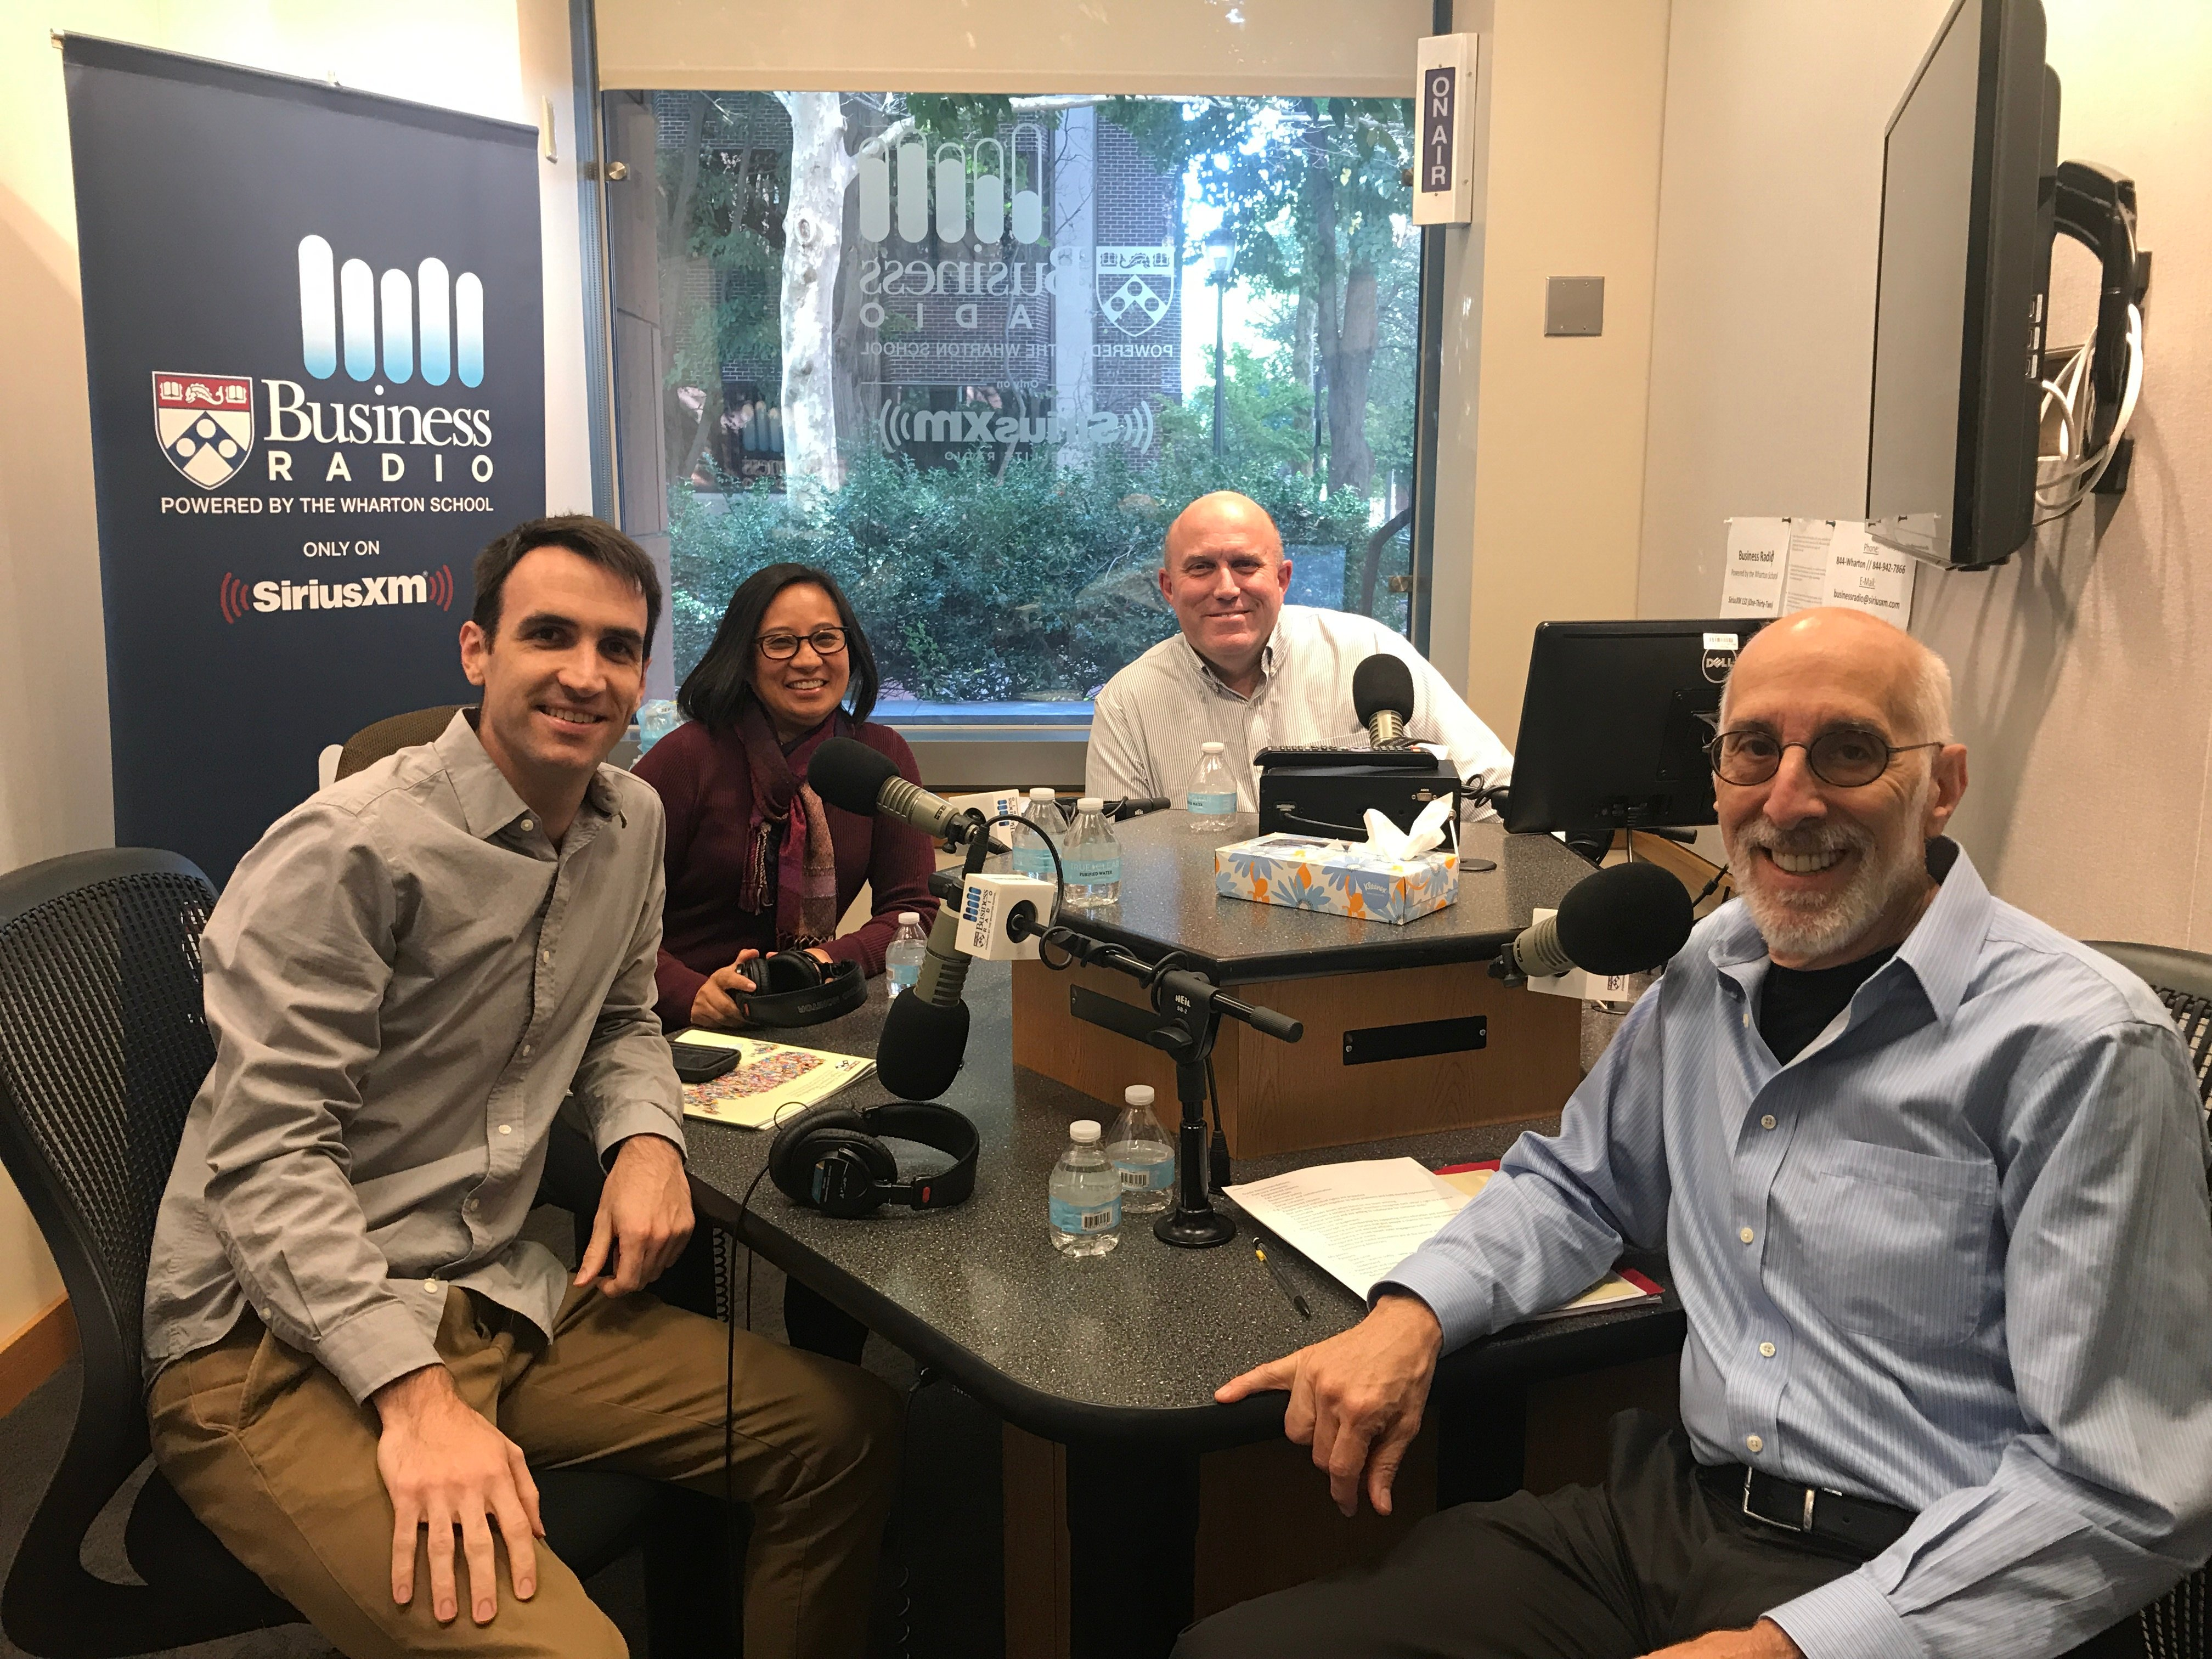 Conor Carroll, Kat Rosqueta, Dan Loney, and Harris Sokoloff at the Wharton Business Radio studio